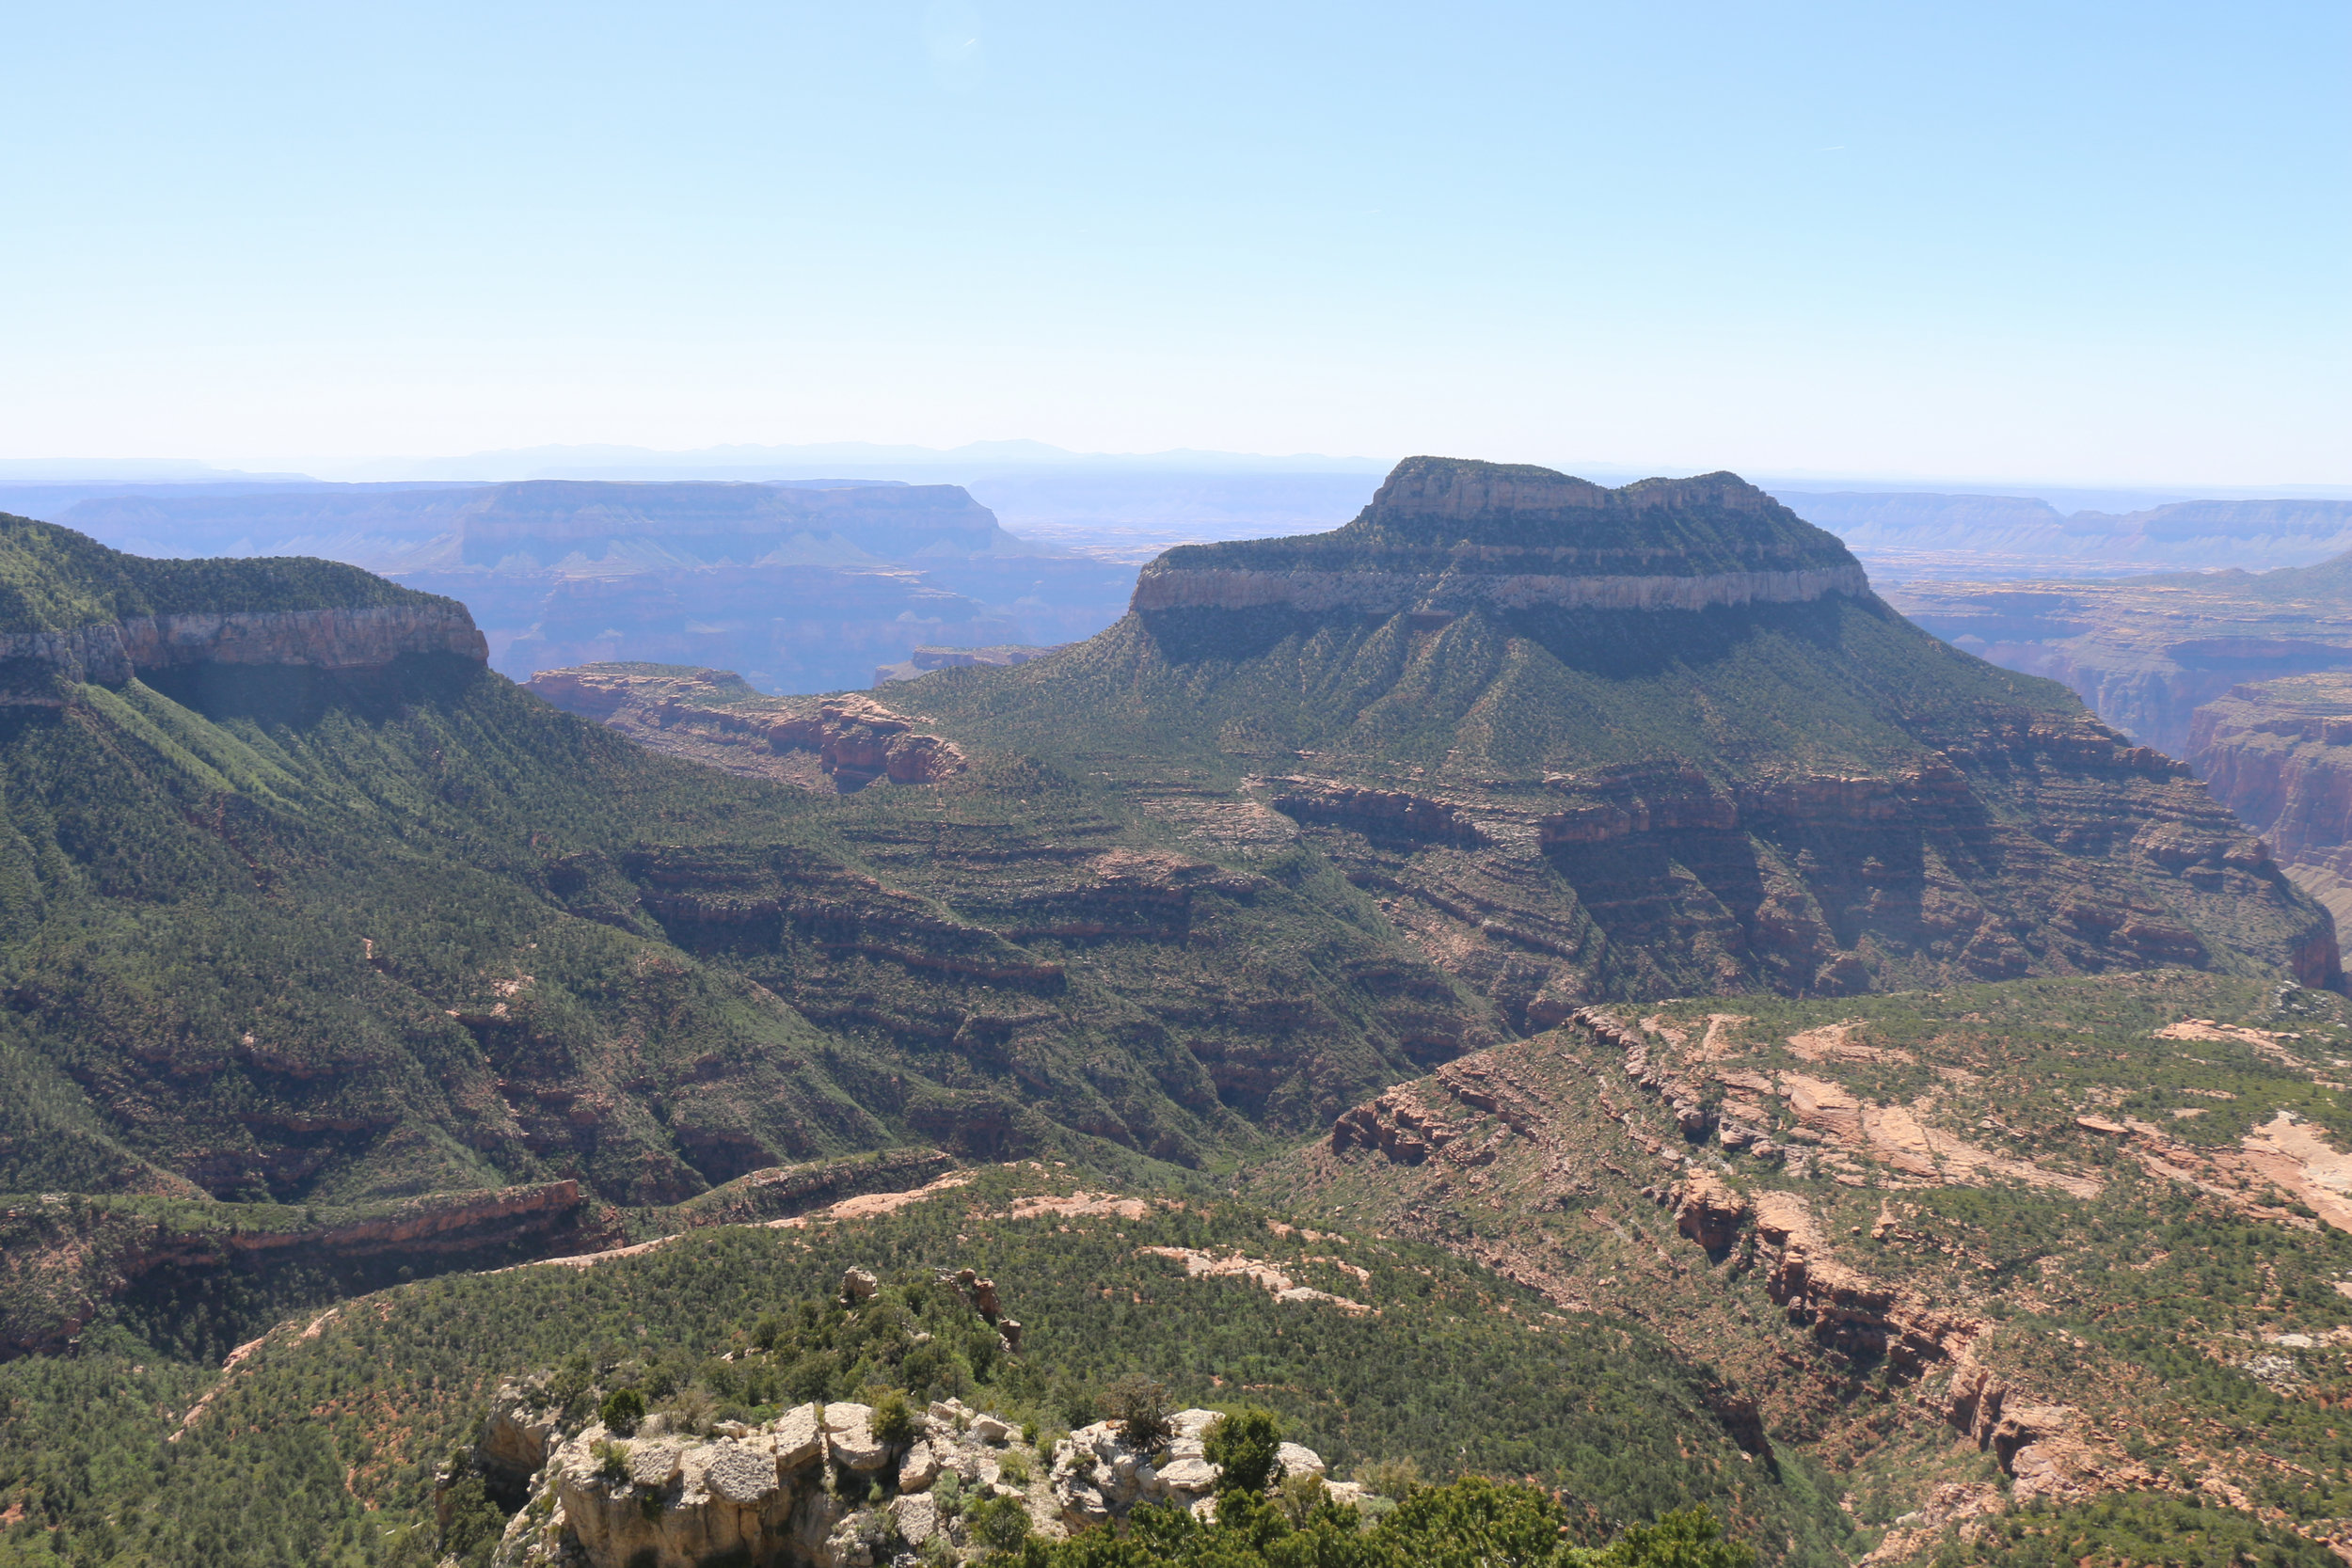 The incredible view from Fire Point.